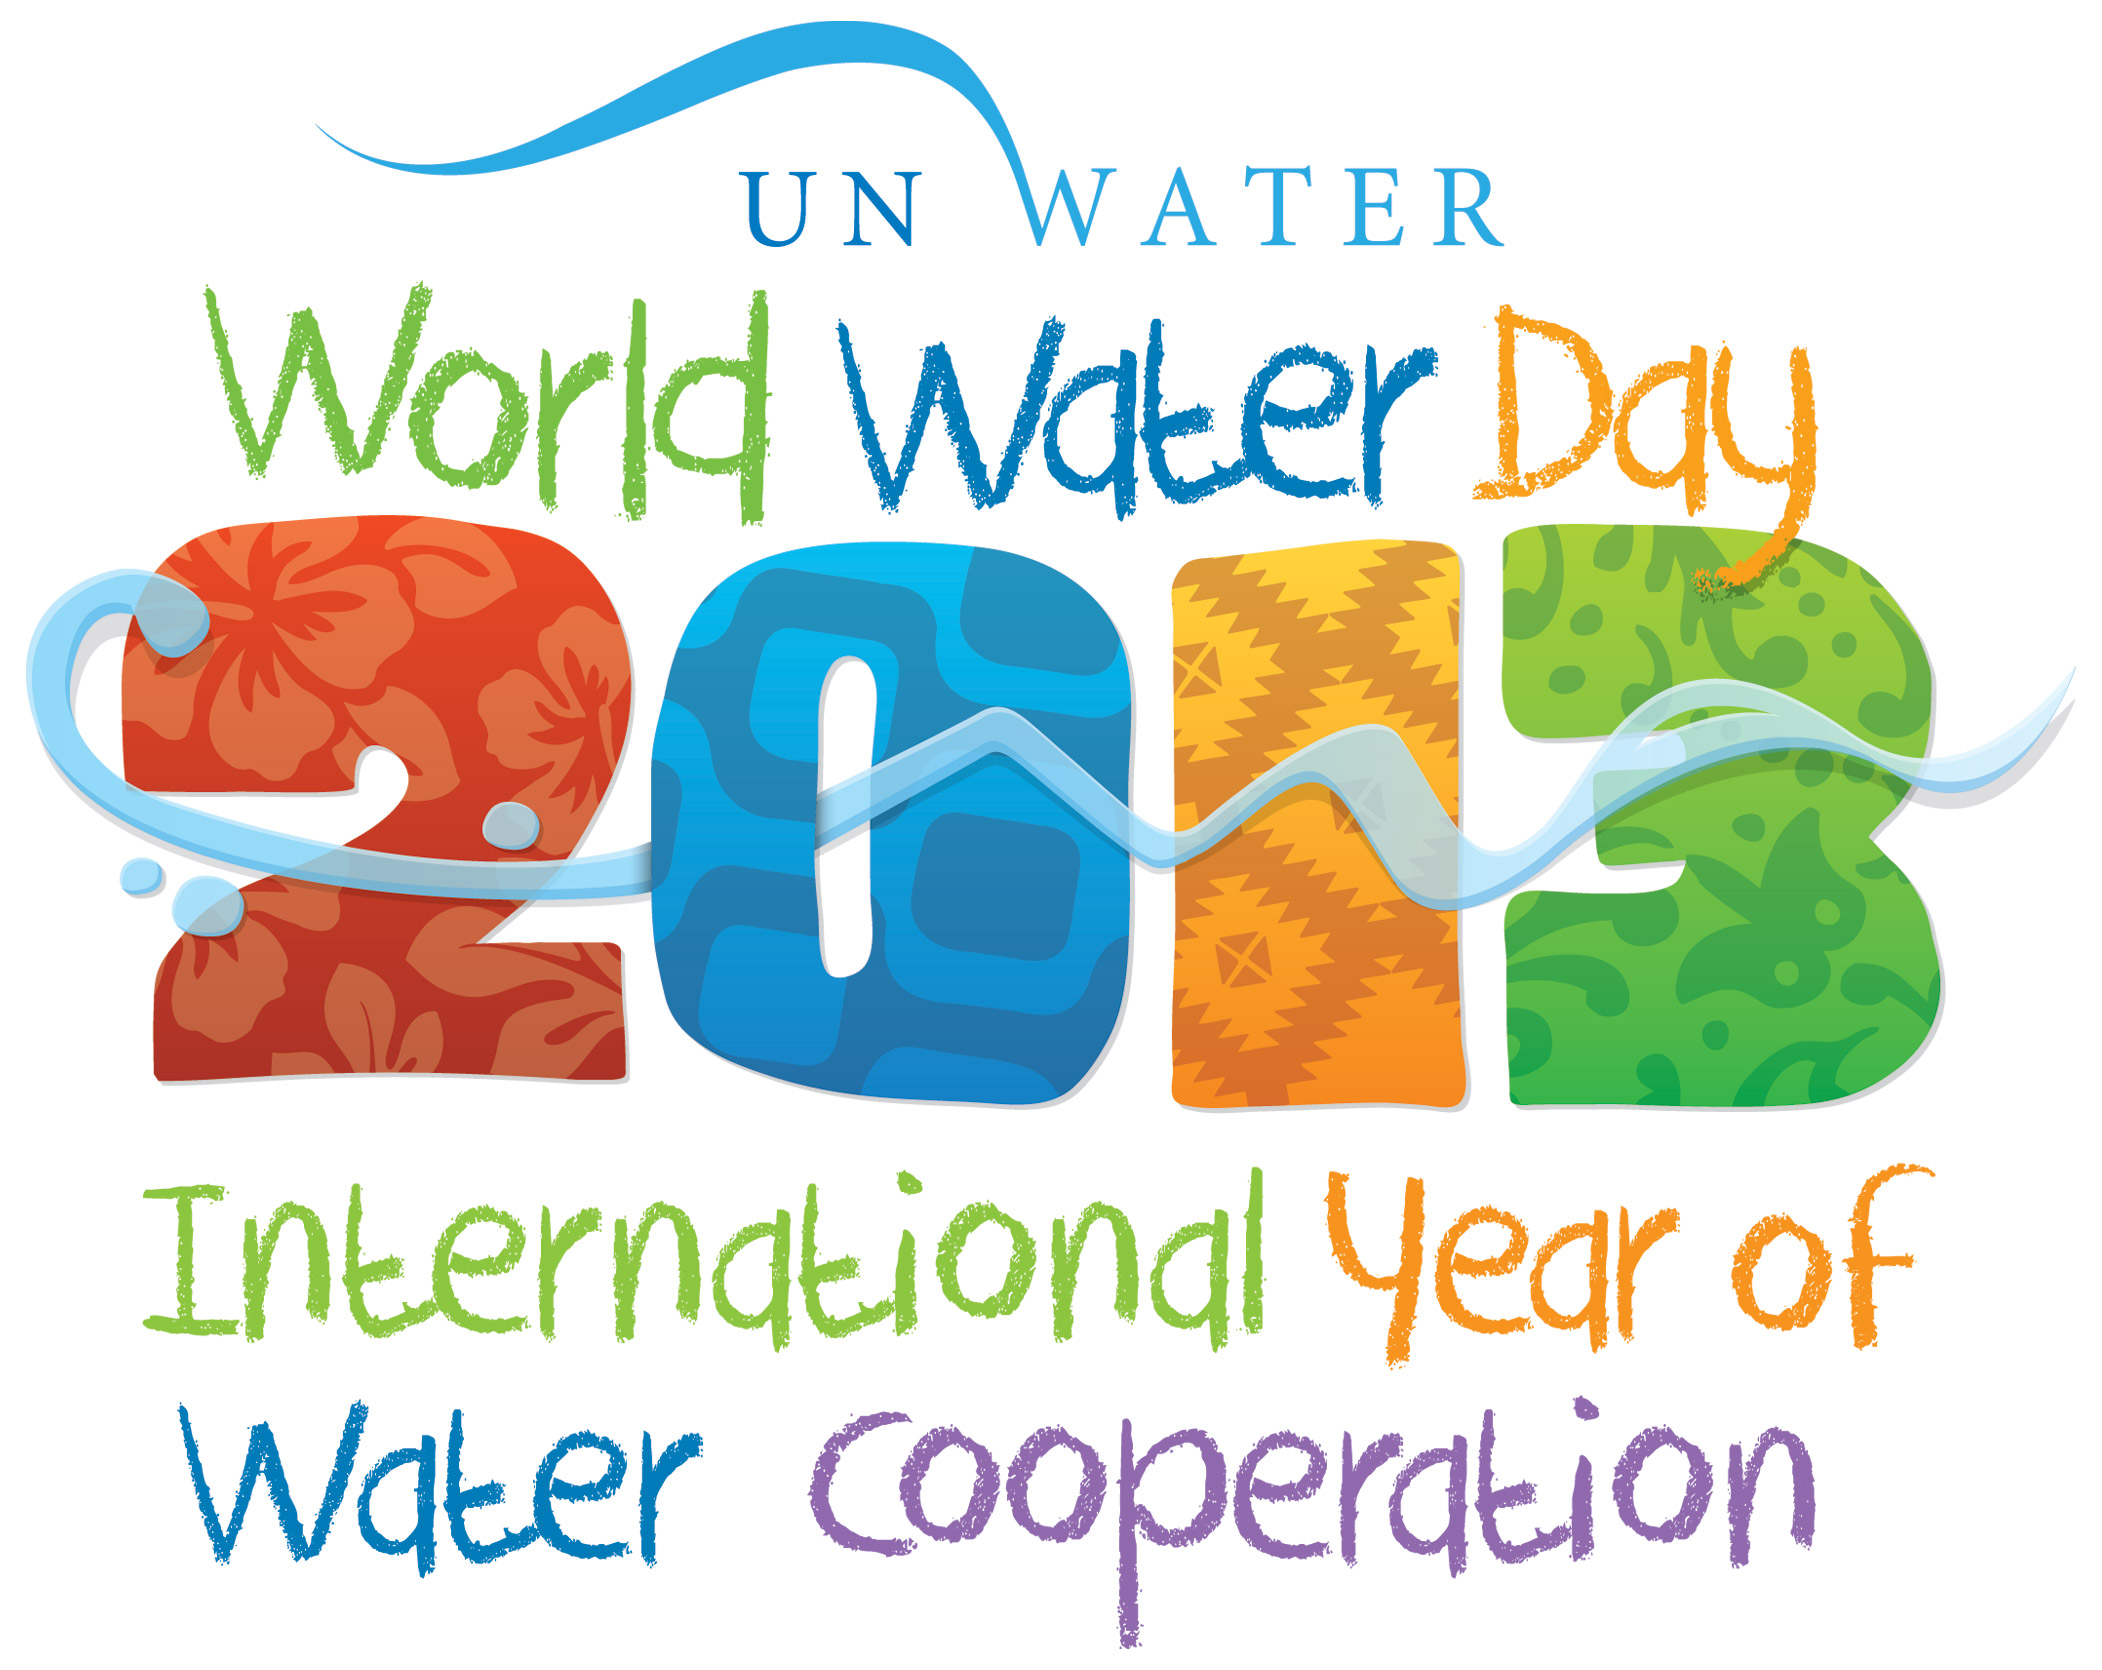 2013 UN World Water Day Logo